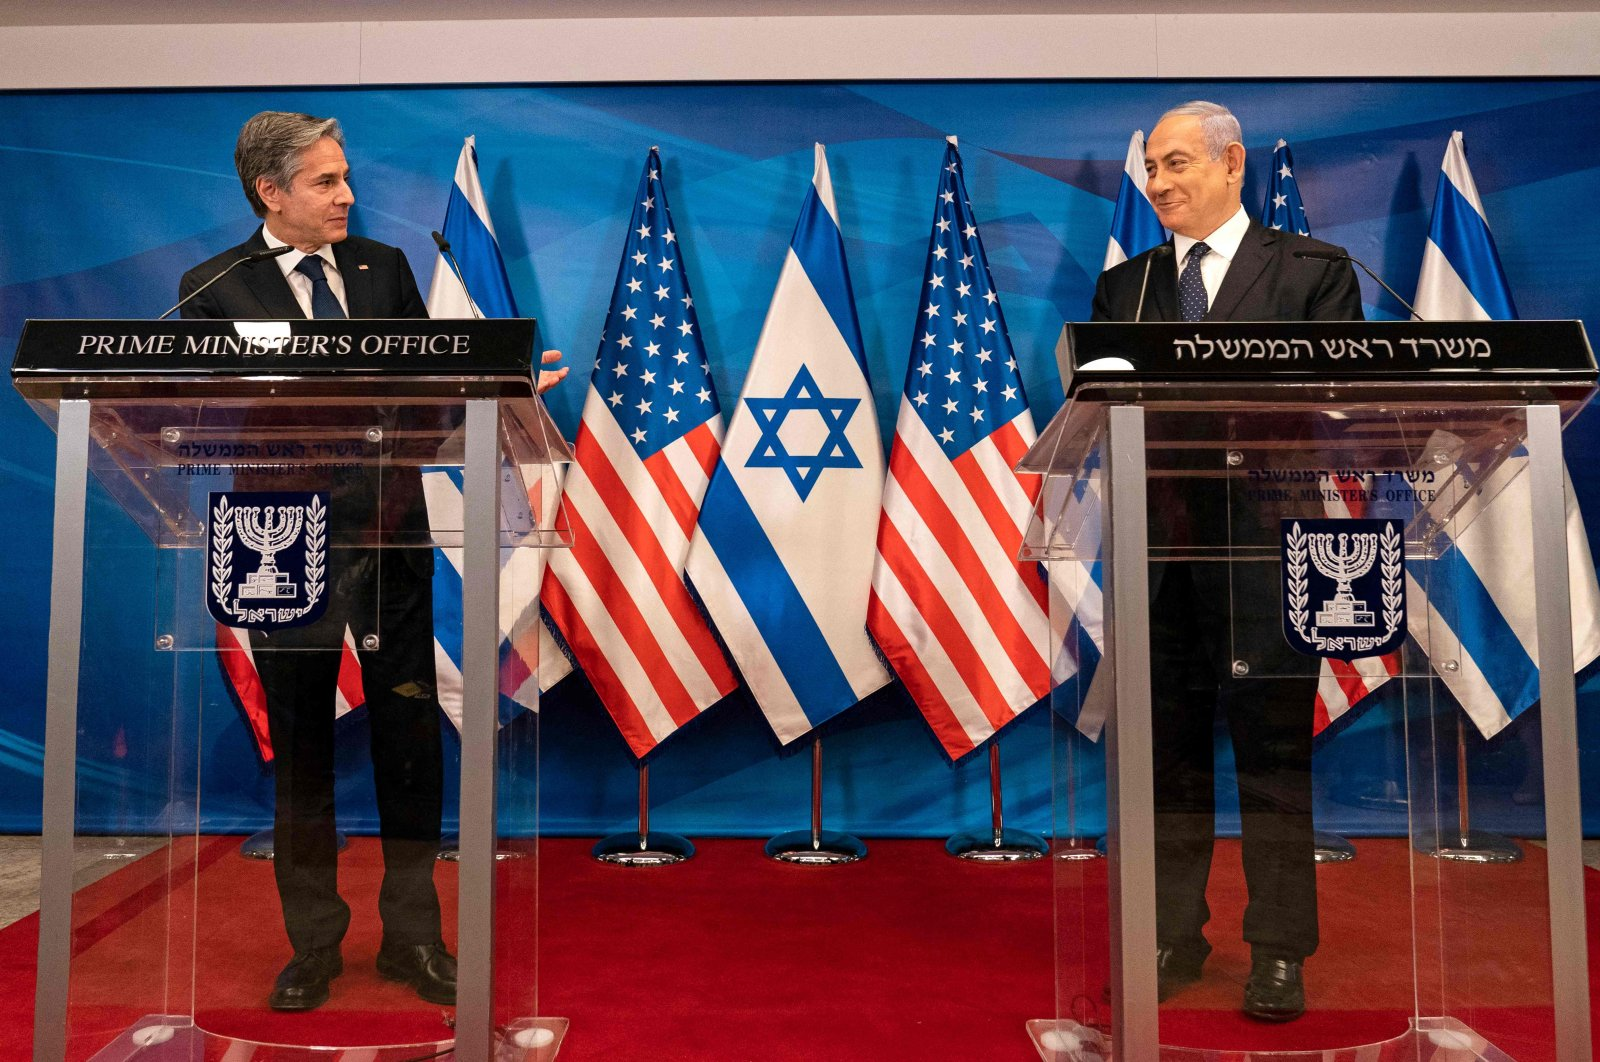 Israeli Prime Minister Benjamin Netanyahu (R) and U.S. Secretary of State Anthony Blinken hold a joint press conference in Jerusalem on May 25, 2021. (AFP Photo)